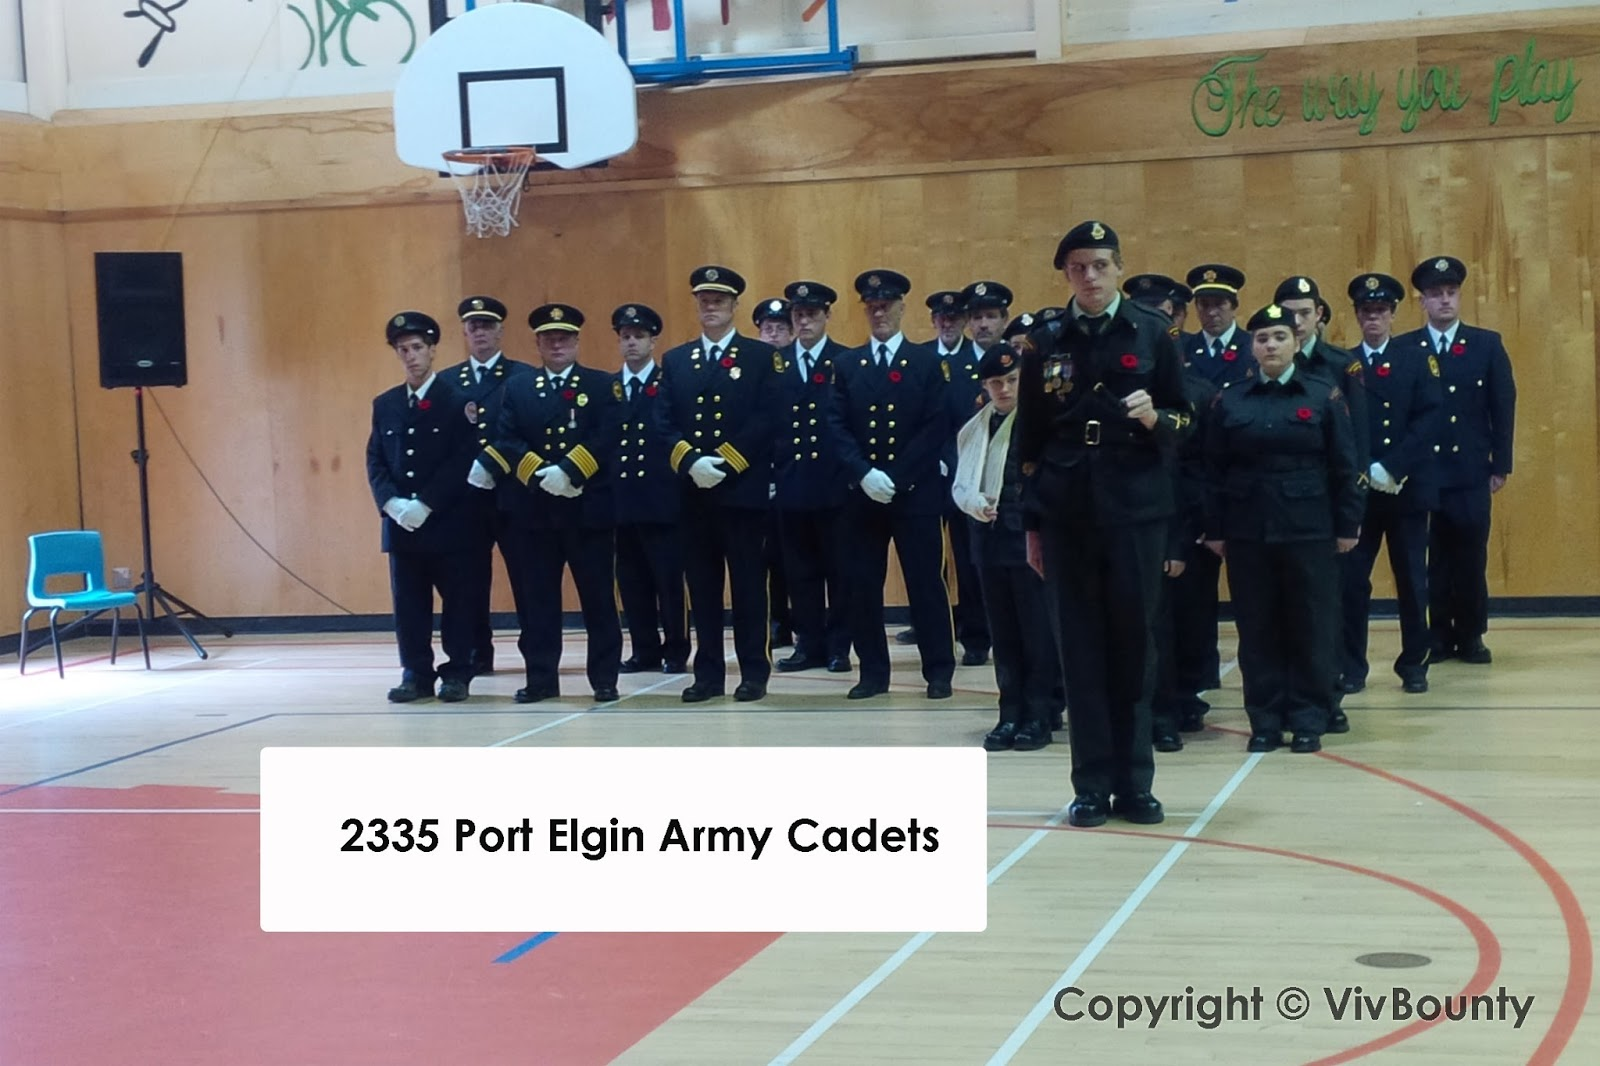 2335 Port Elgin Army Cadets, VivBounty